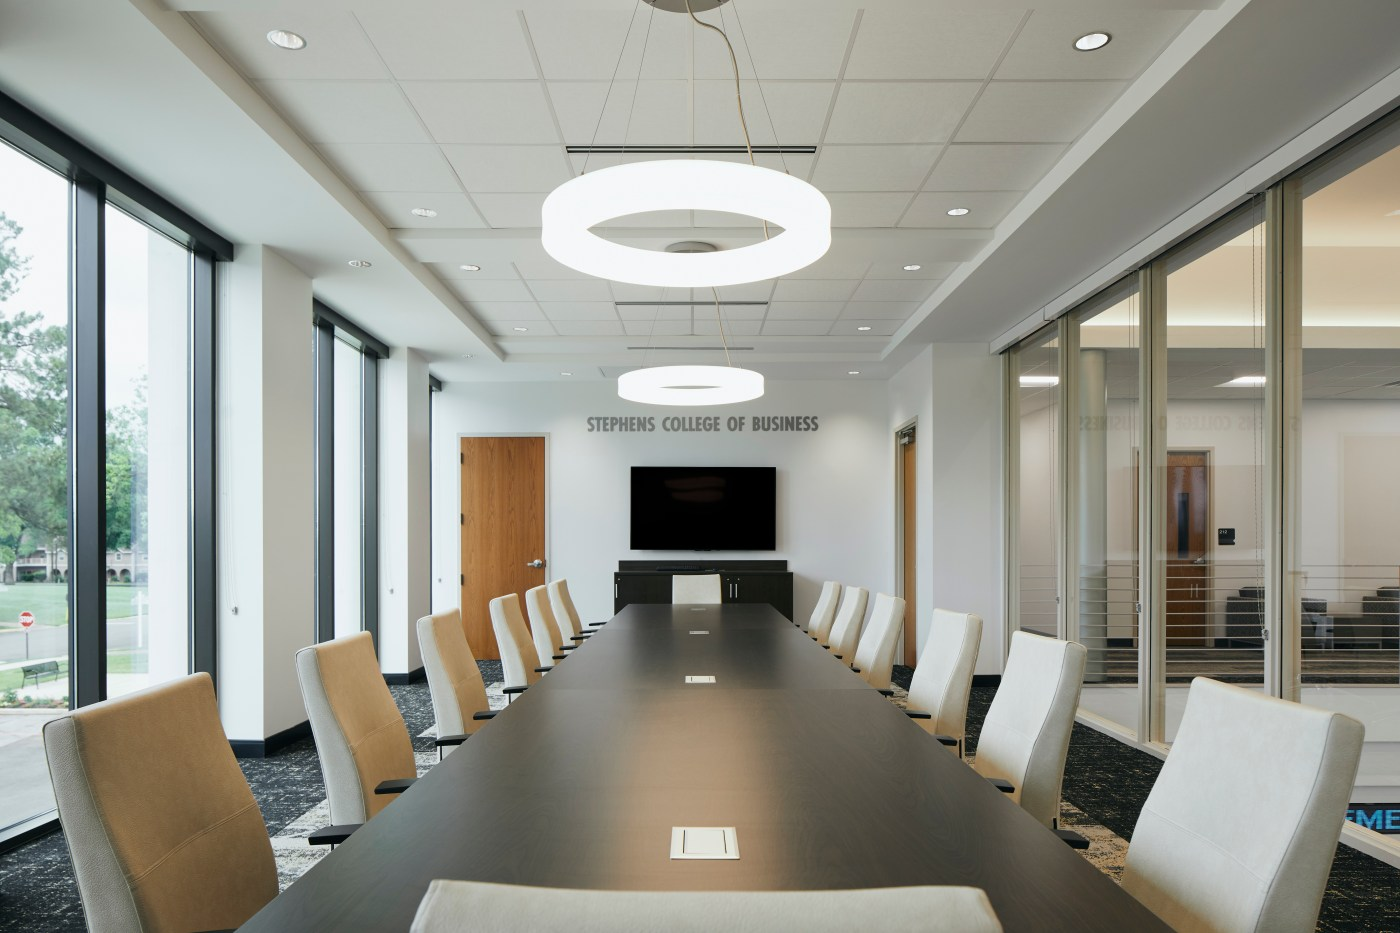 board rooms are one of the classroom design trends